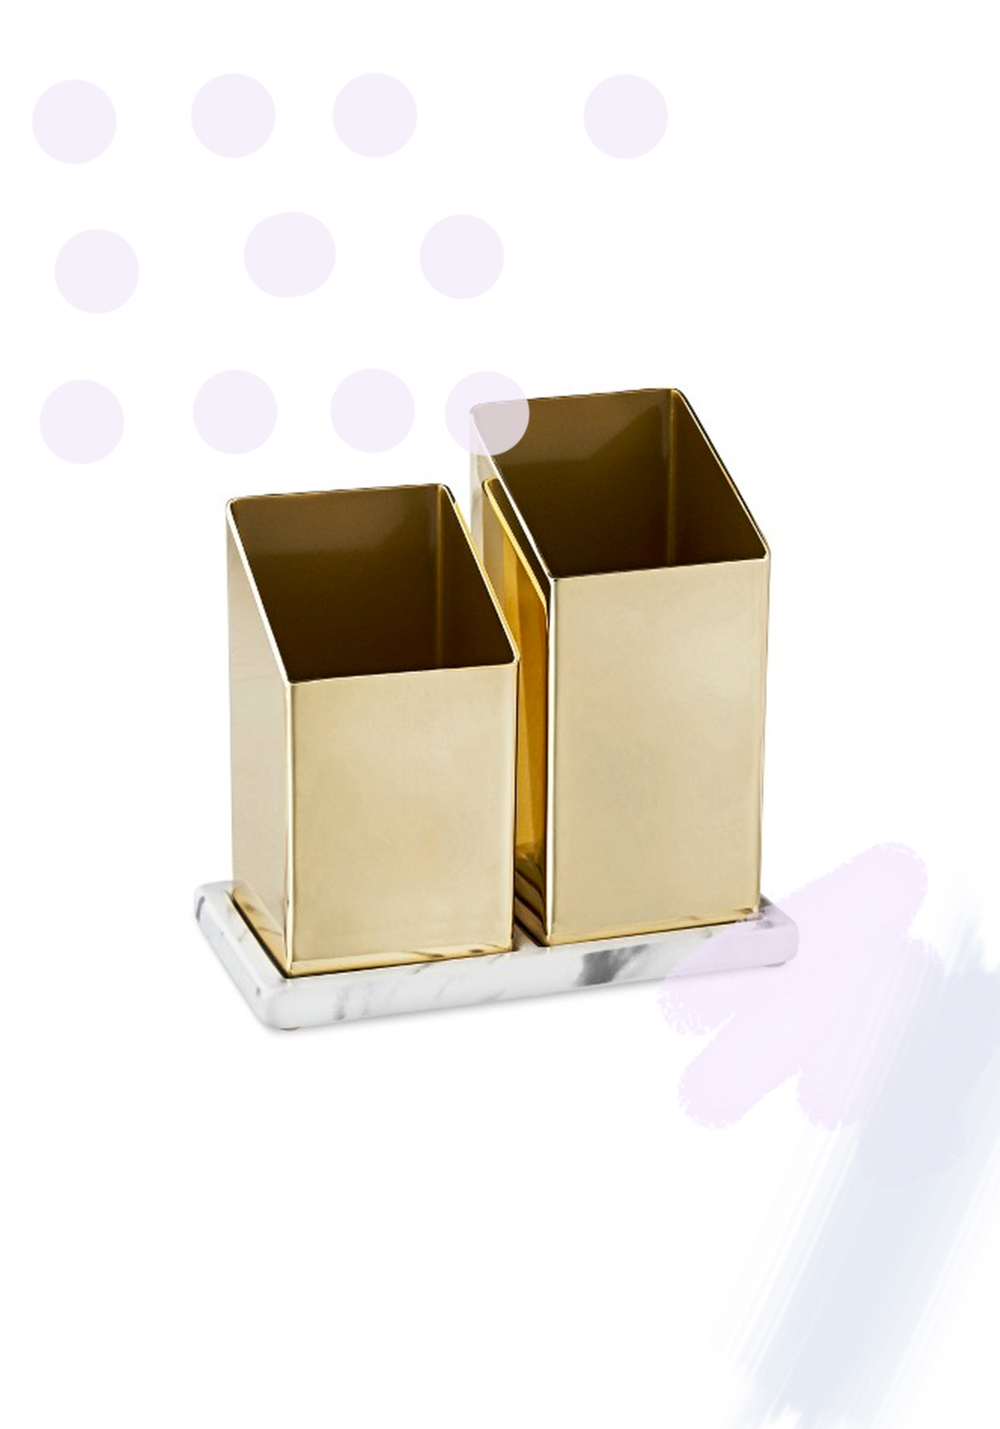 Target - Nate Berkus -  Angled Brass Brush Holder - $9.99